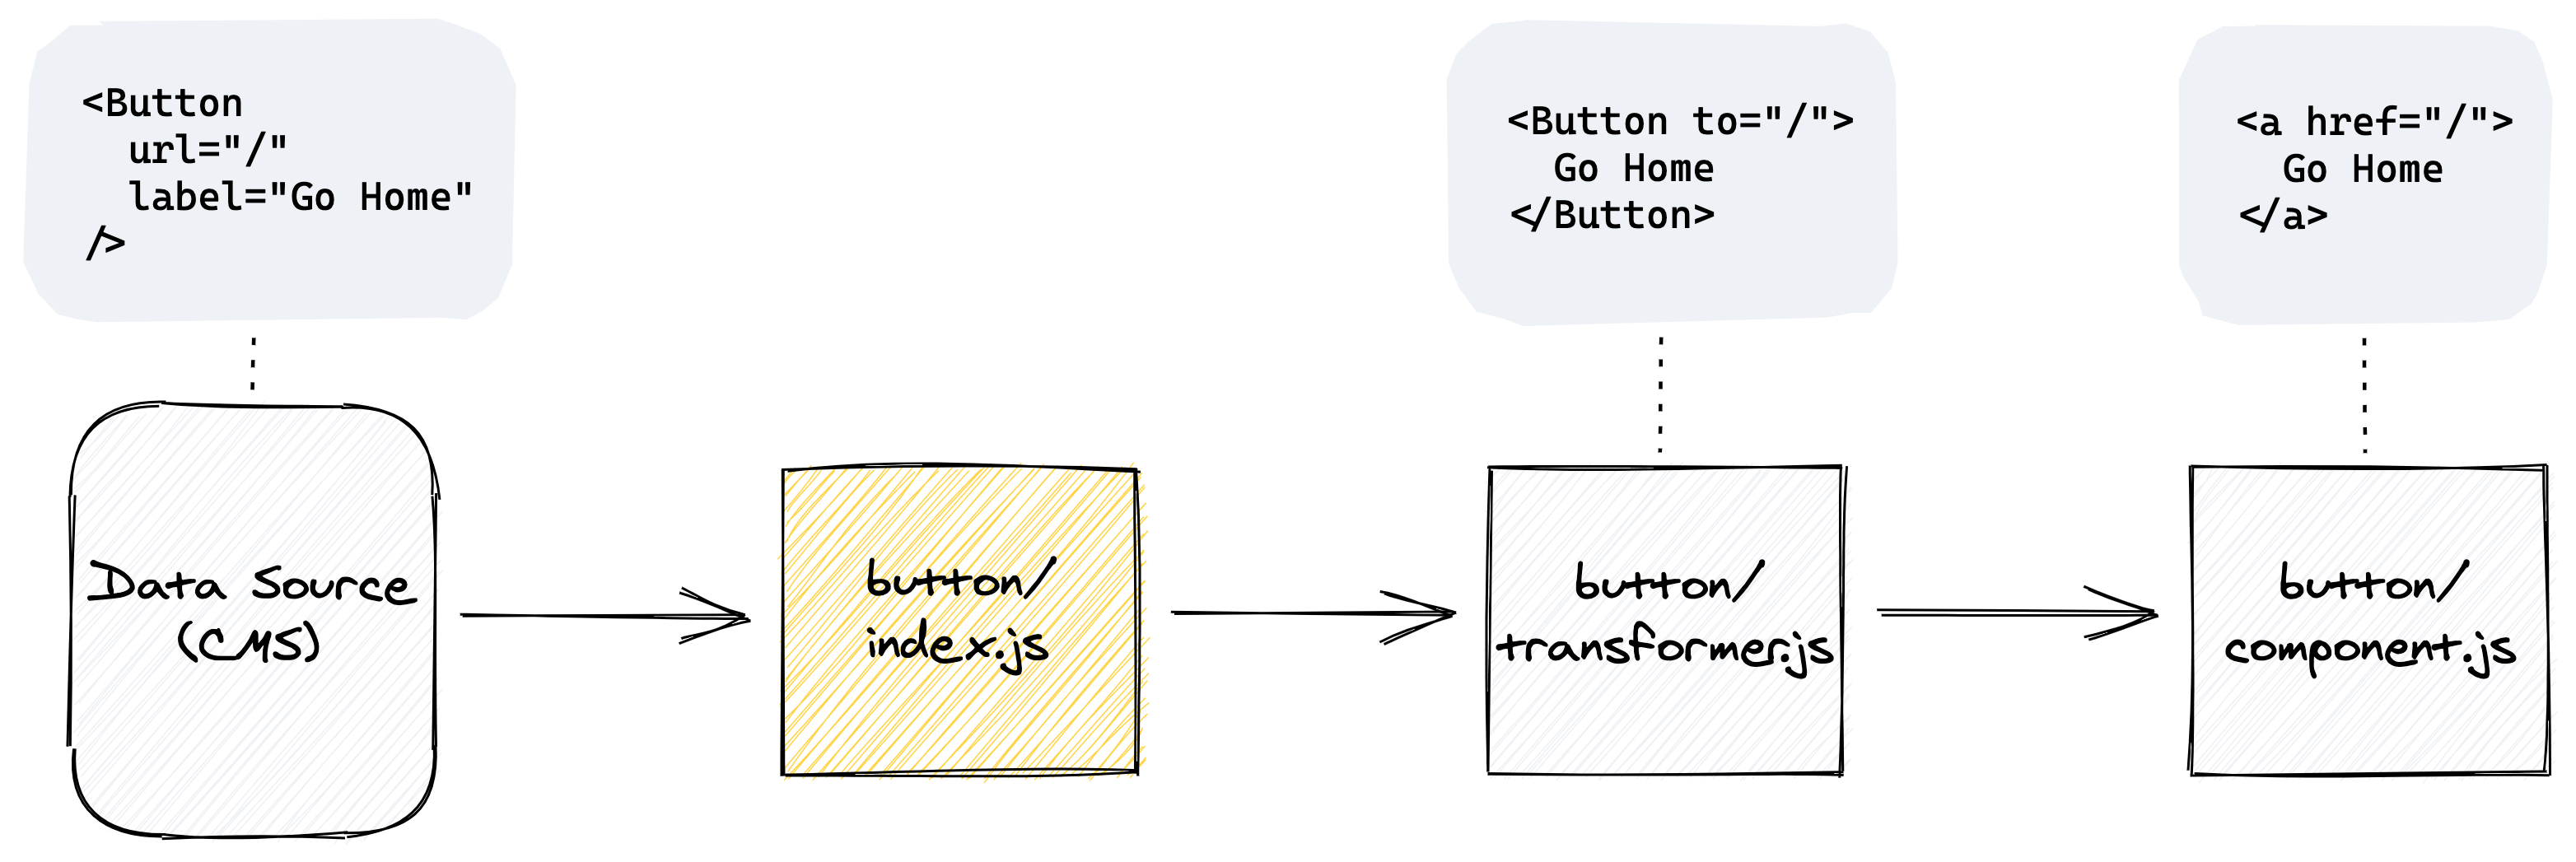 The same illustrated diagram, but the yellow box is now the button index.js file that points to a transformer.js file that then points to a button component.js file.